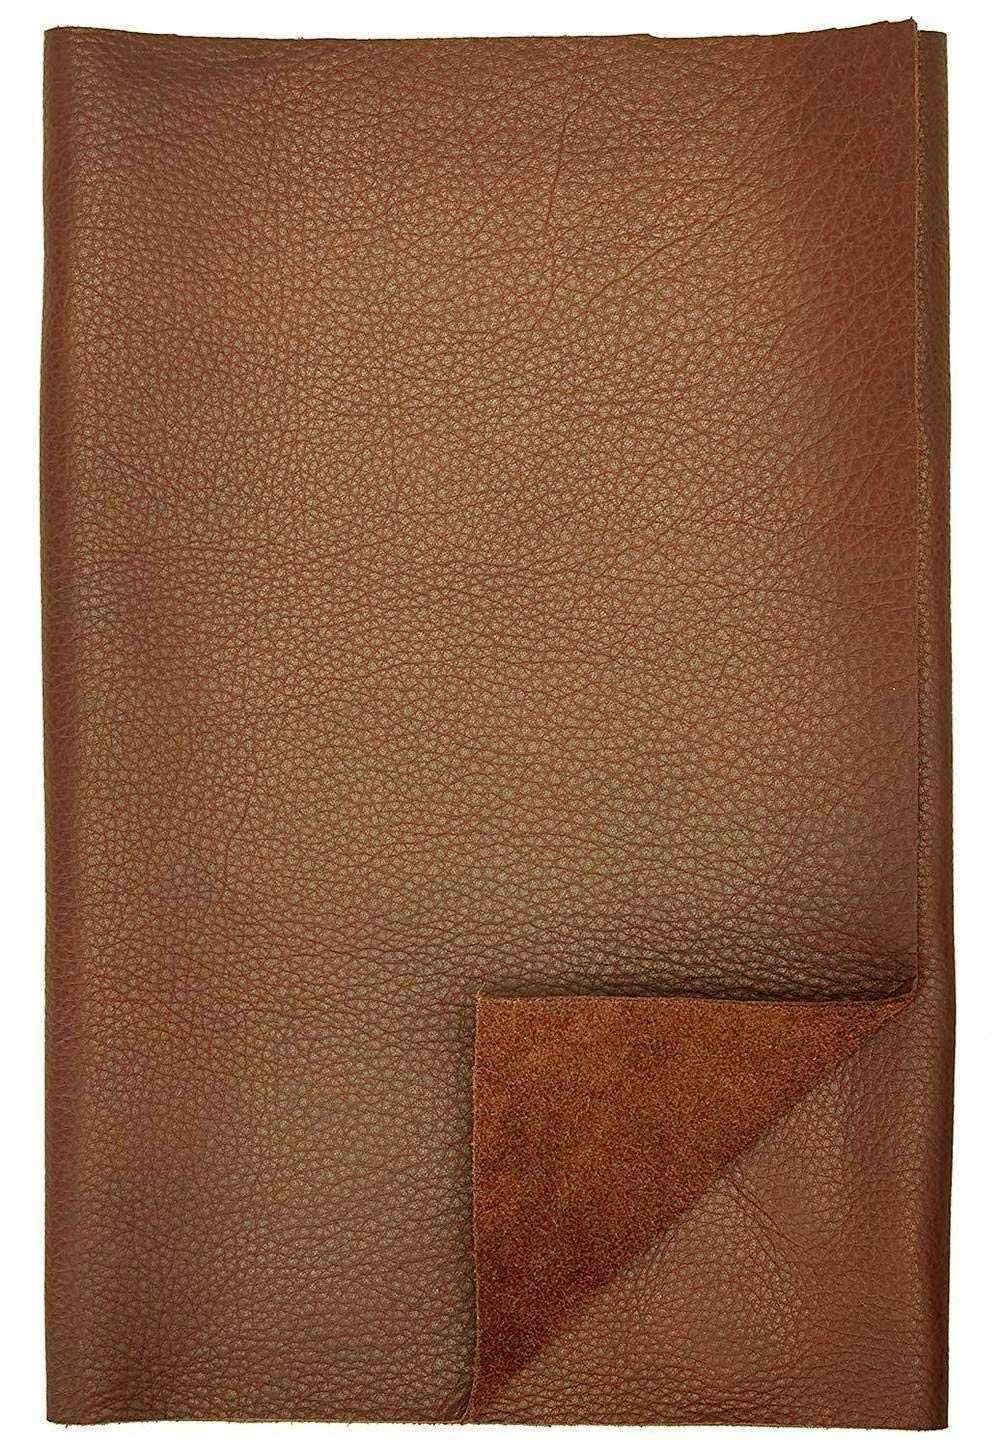 REED Leather HIDES - Cow Skins Various Colors & Sizes (12 X 24 Inches 2 Square Foot, Brown)